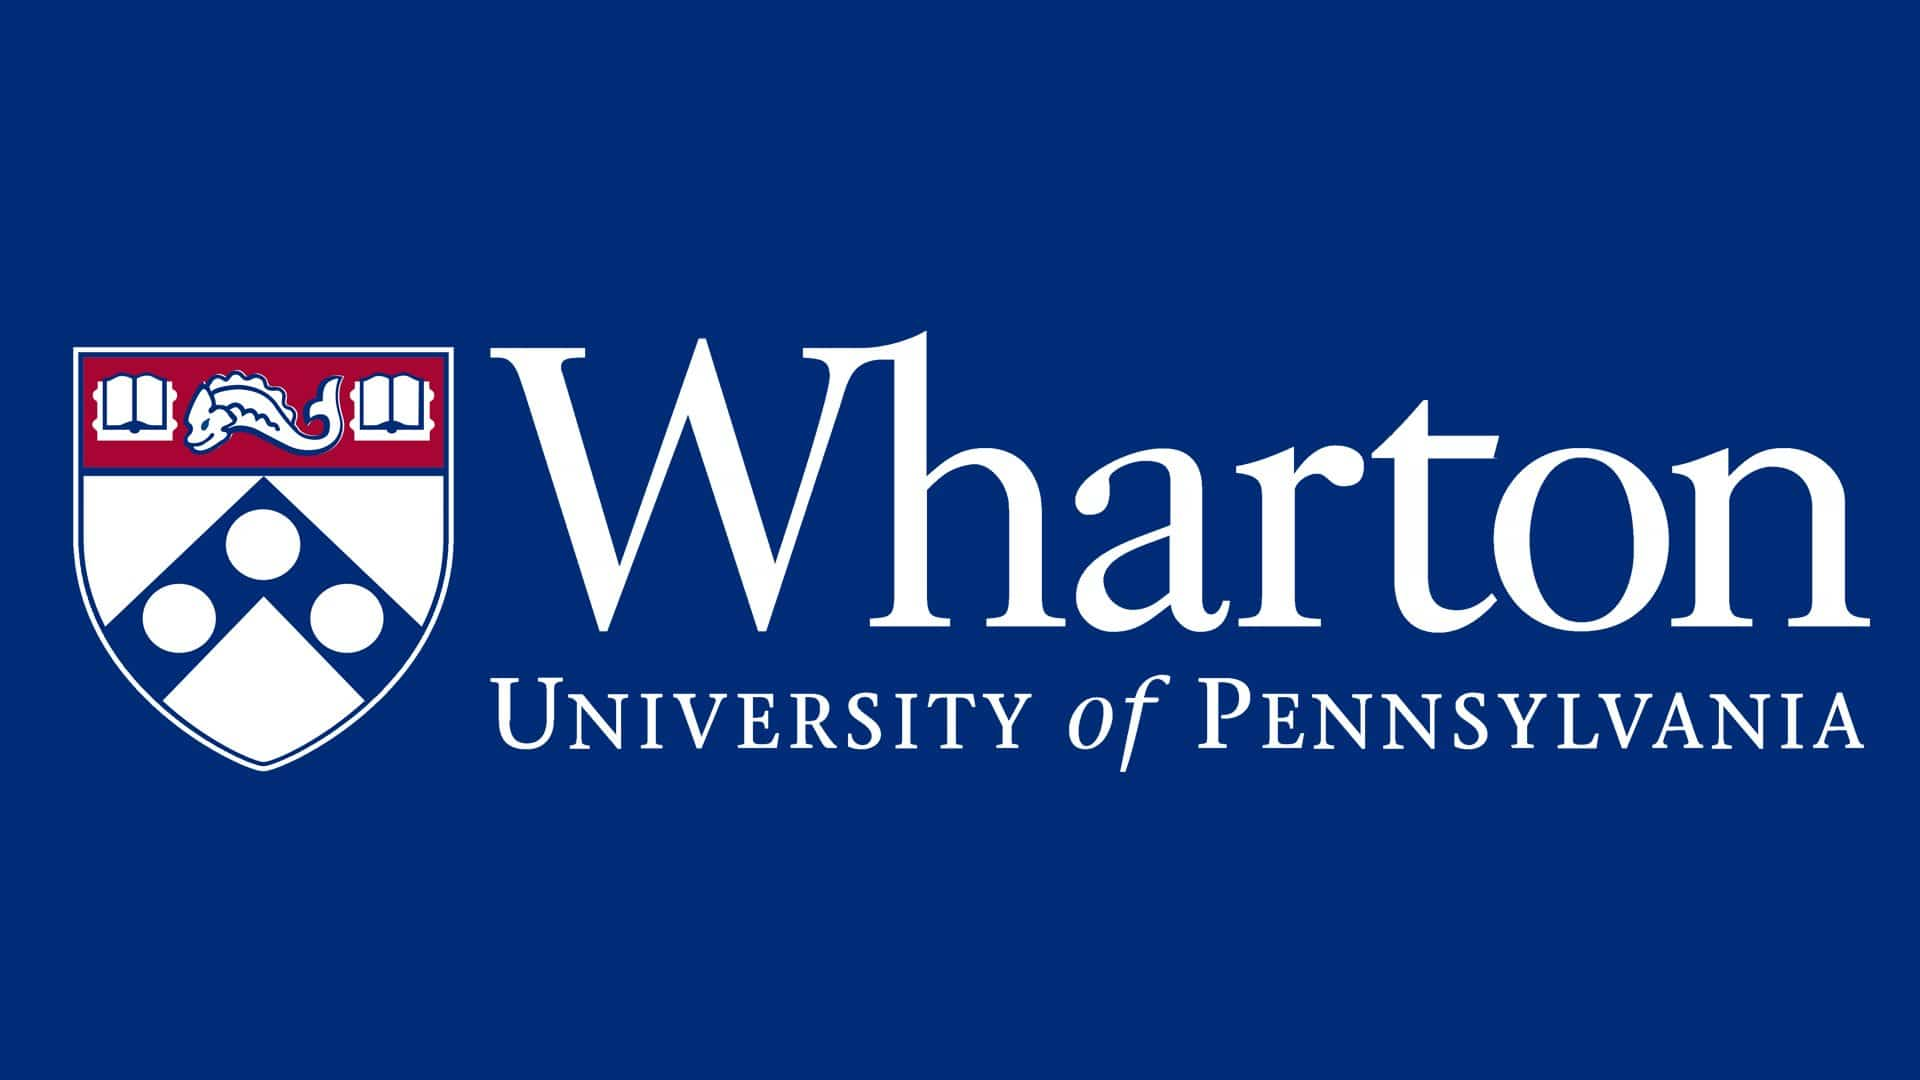 Wharton School receives $5M worth BTC in donation from mysterious donor